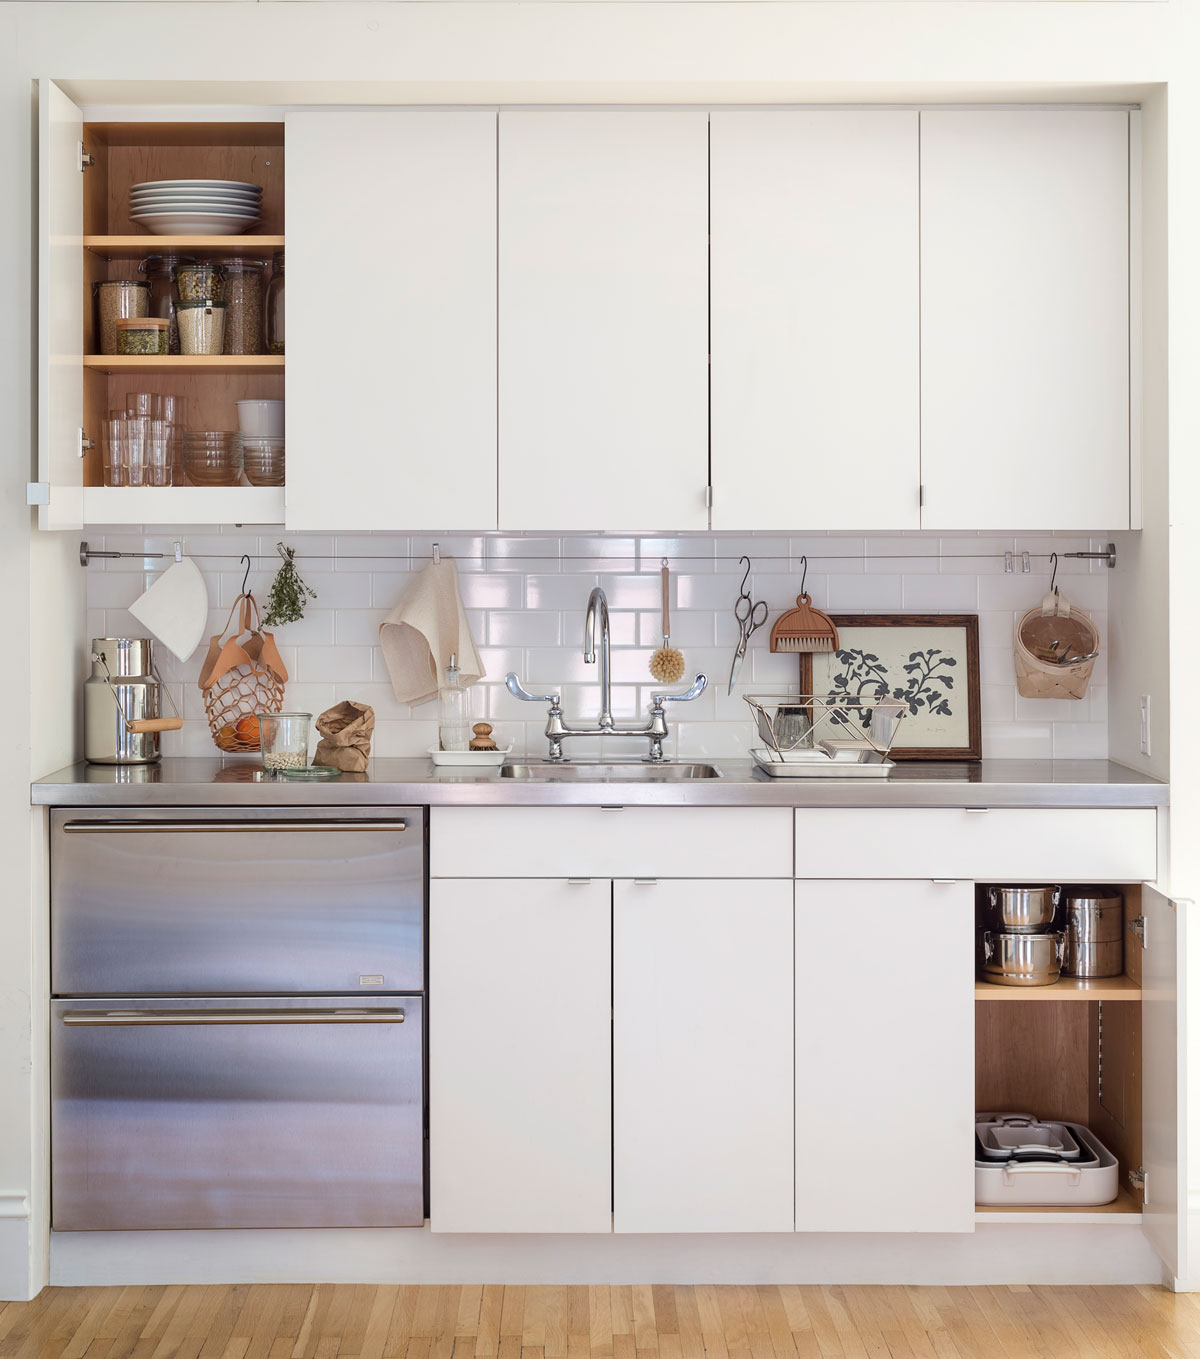 Remodelista: The Organized Home: Simple, Stylish Storage Ideas for ...